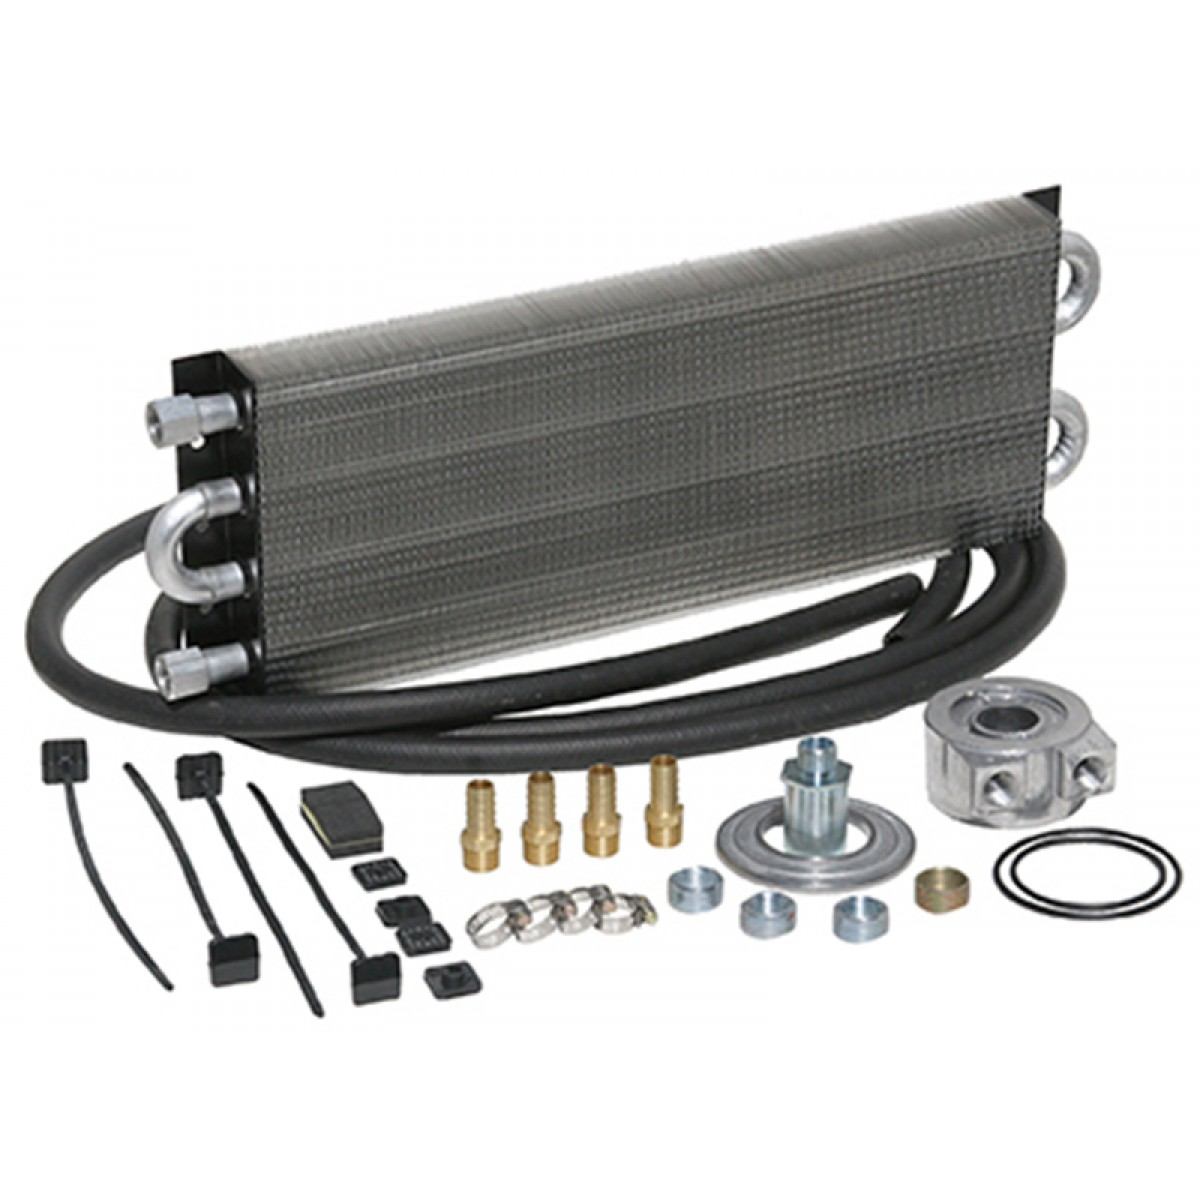 Engine Oil Cooler : Universal engine oil cooler kit sandwich style hp